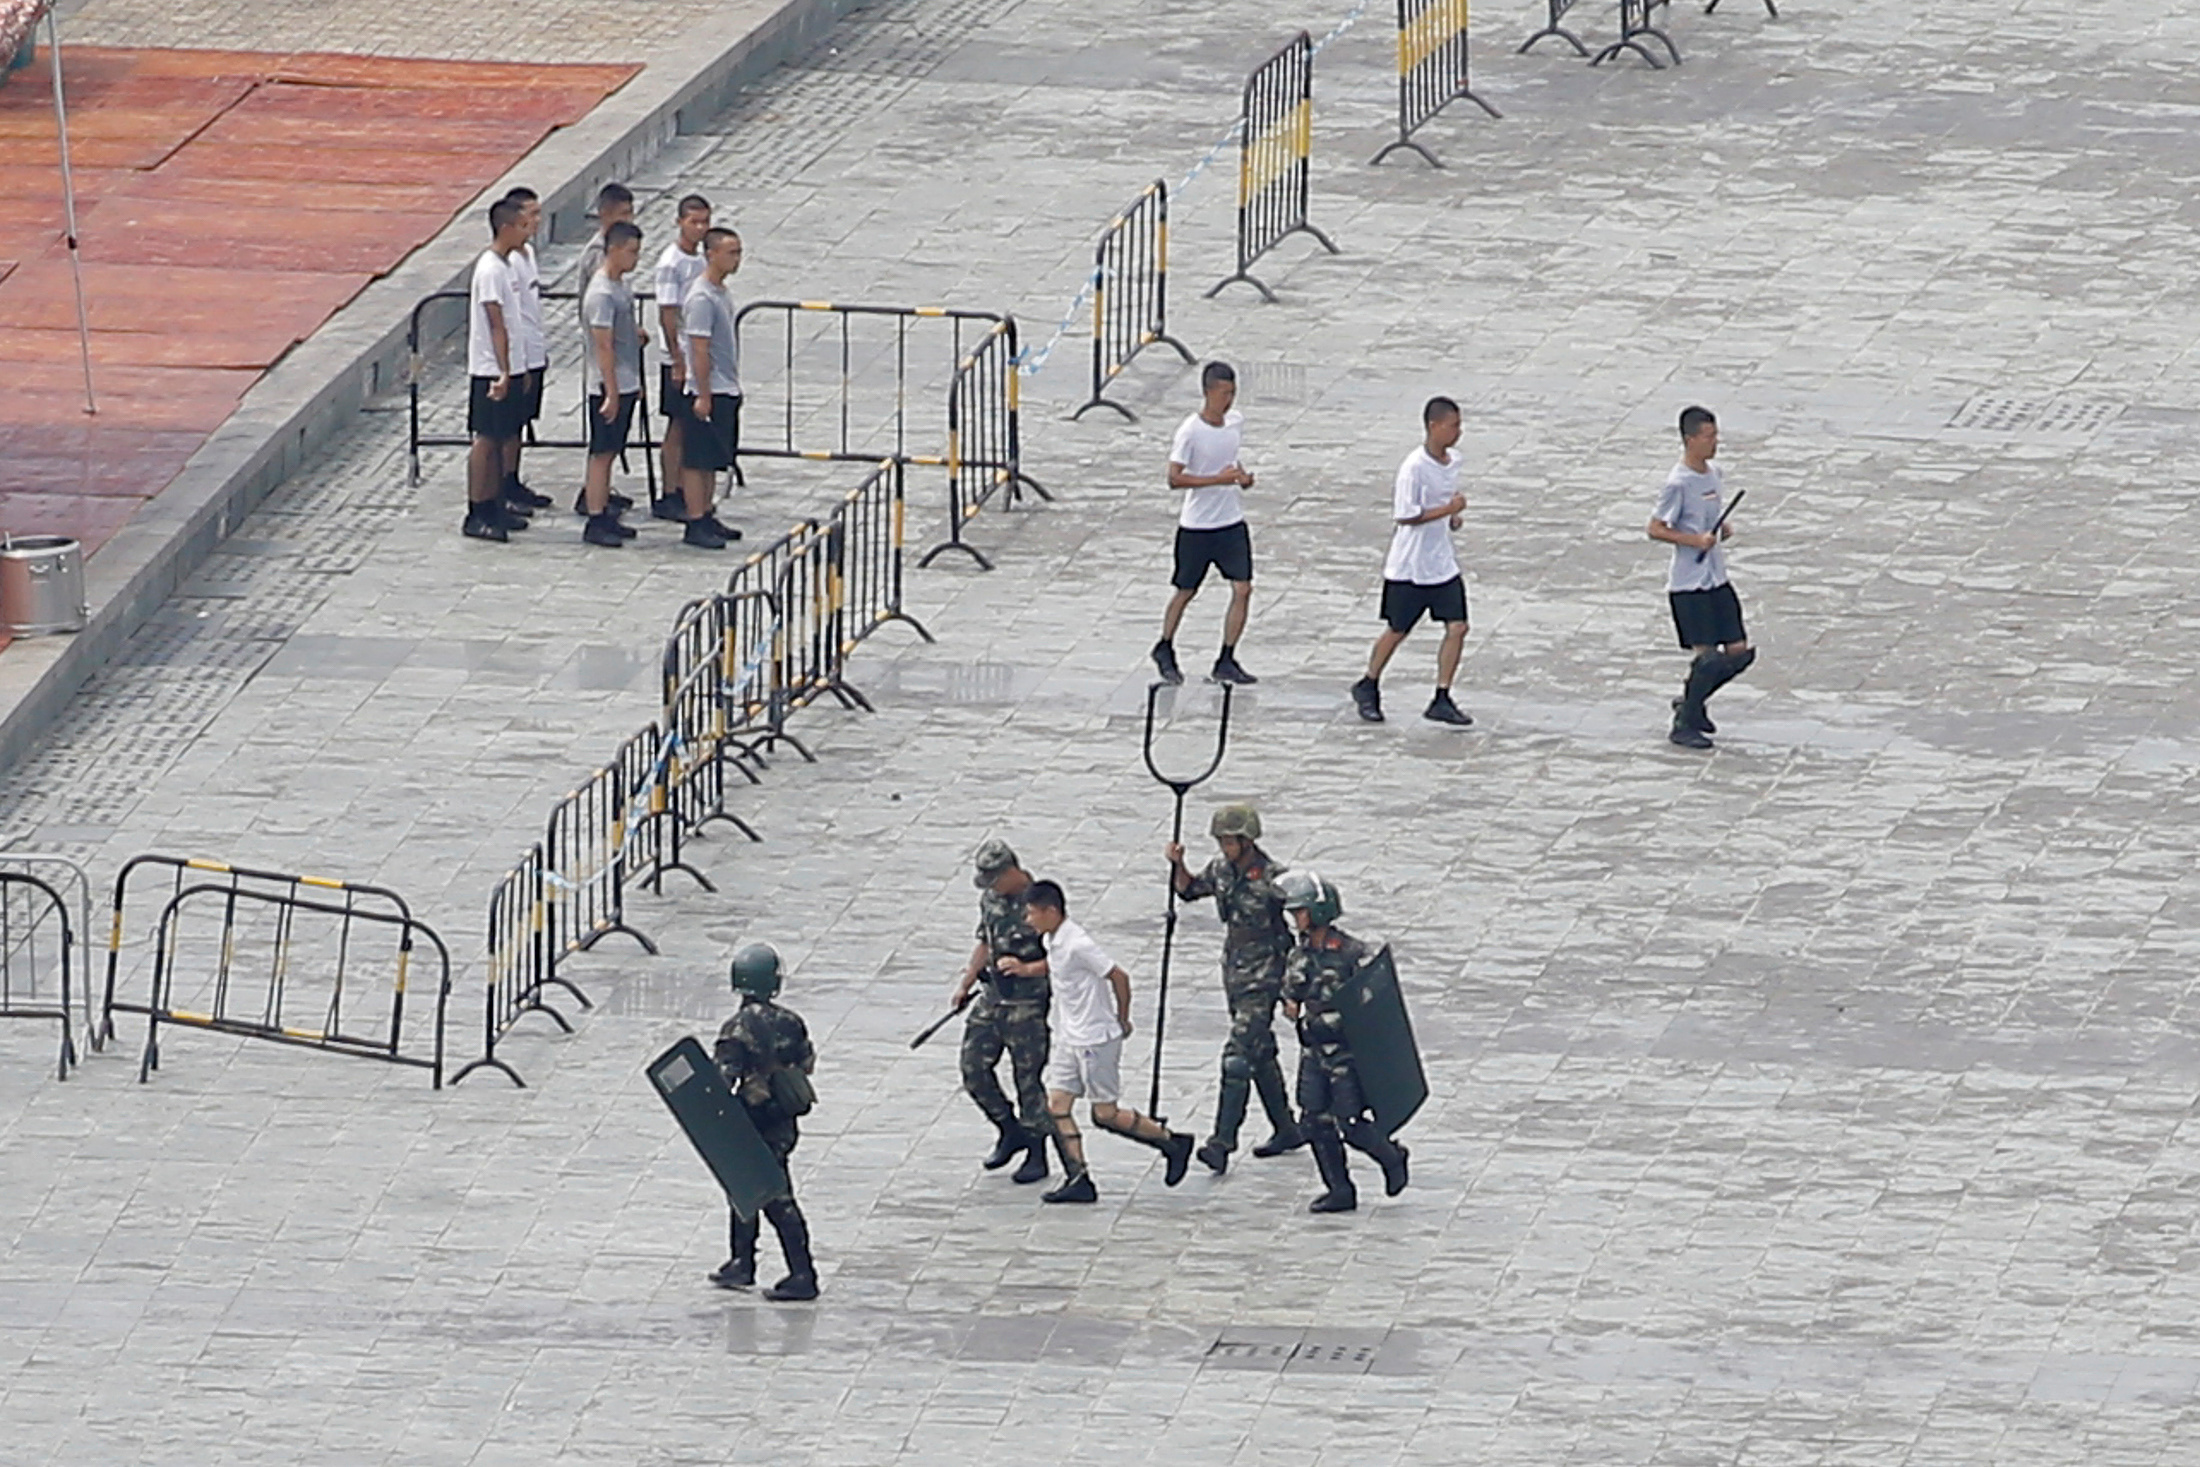 A man is escorted by armed officers during a drill at Shenzhen Bay Sports Centre. (Reuters)